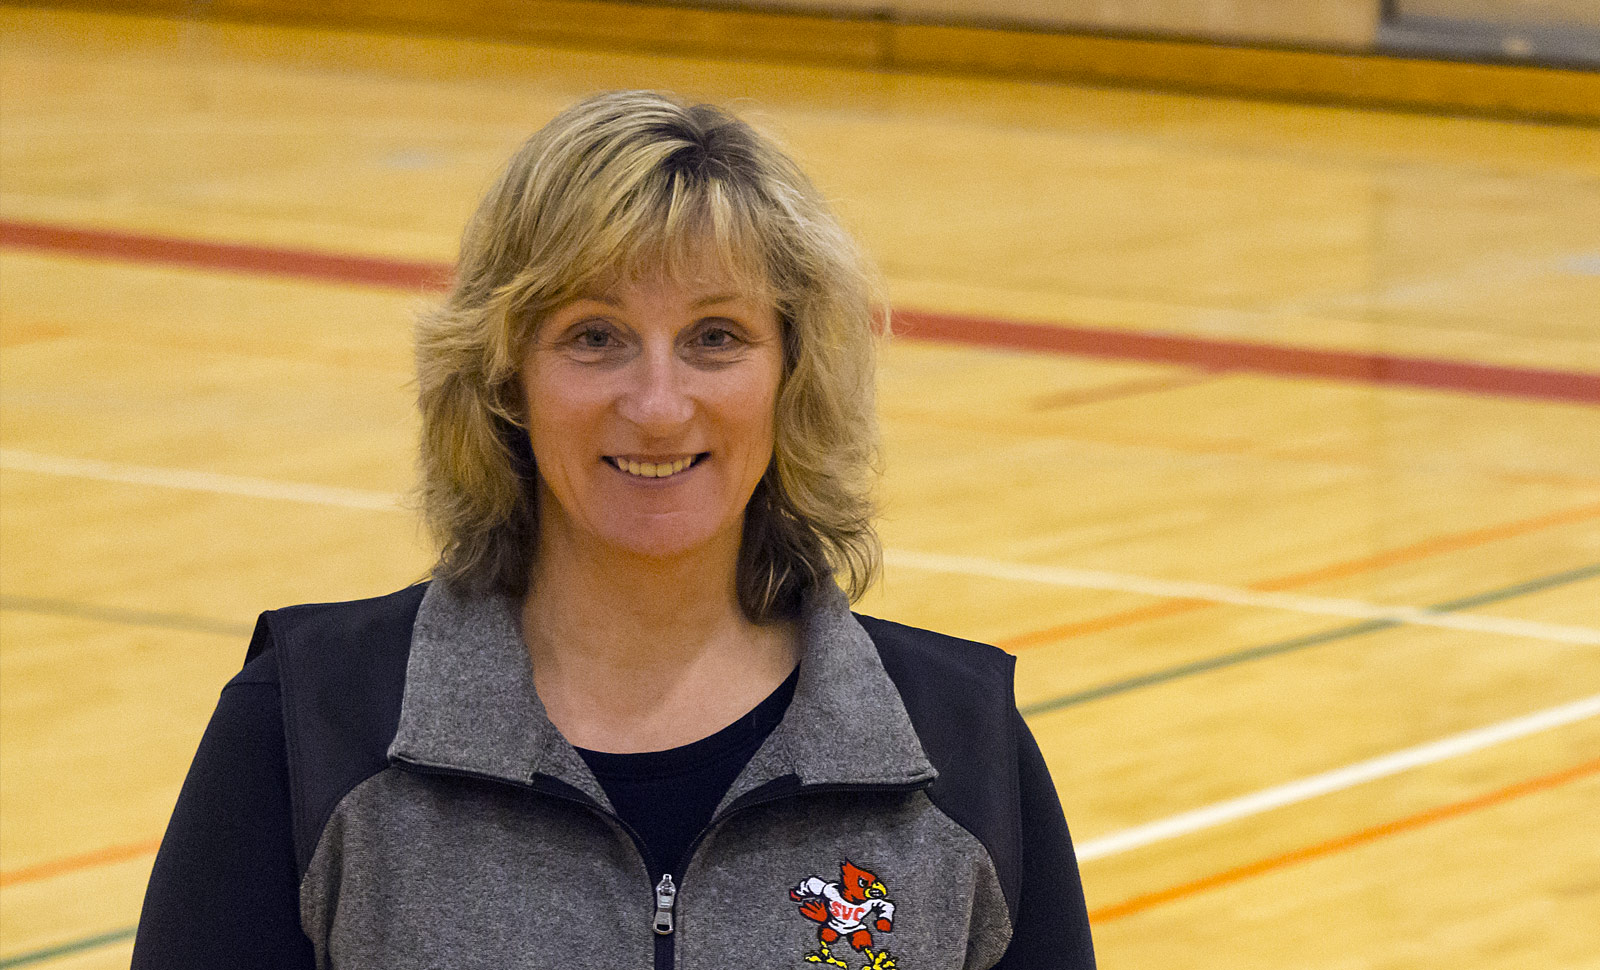 Sandy Leber, Program Manager, Athletics